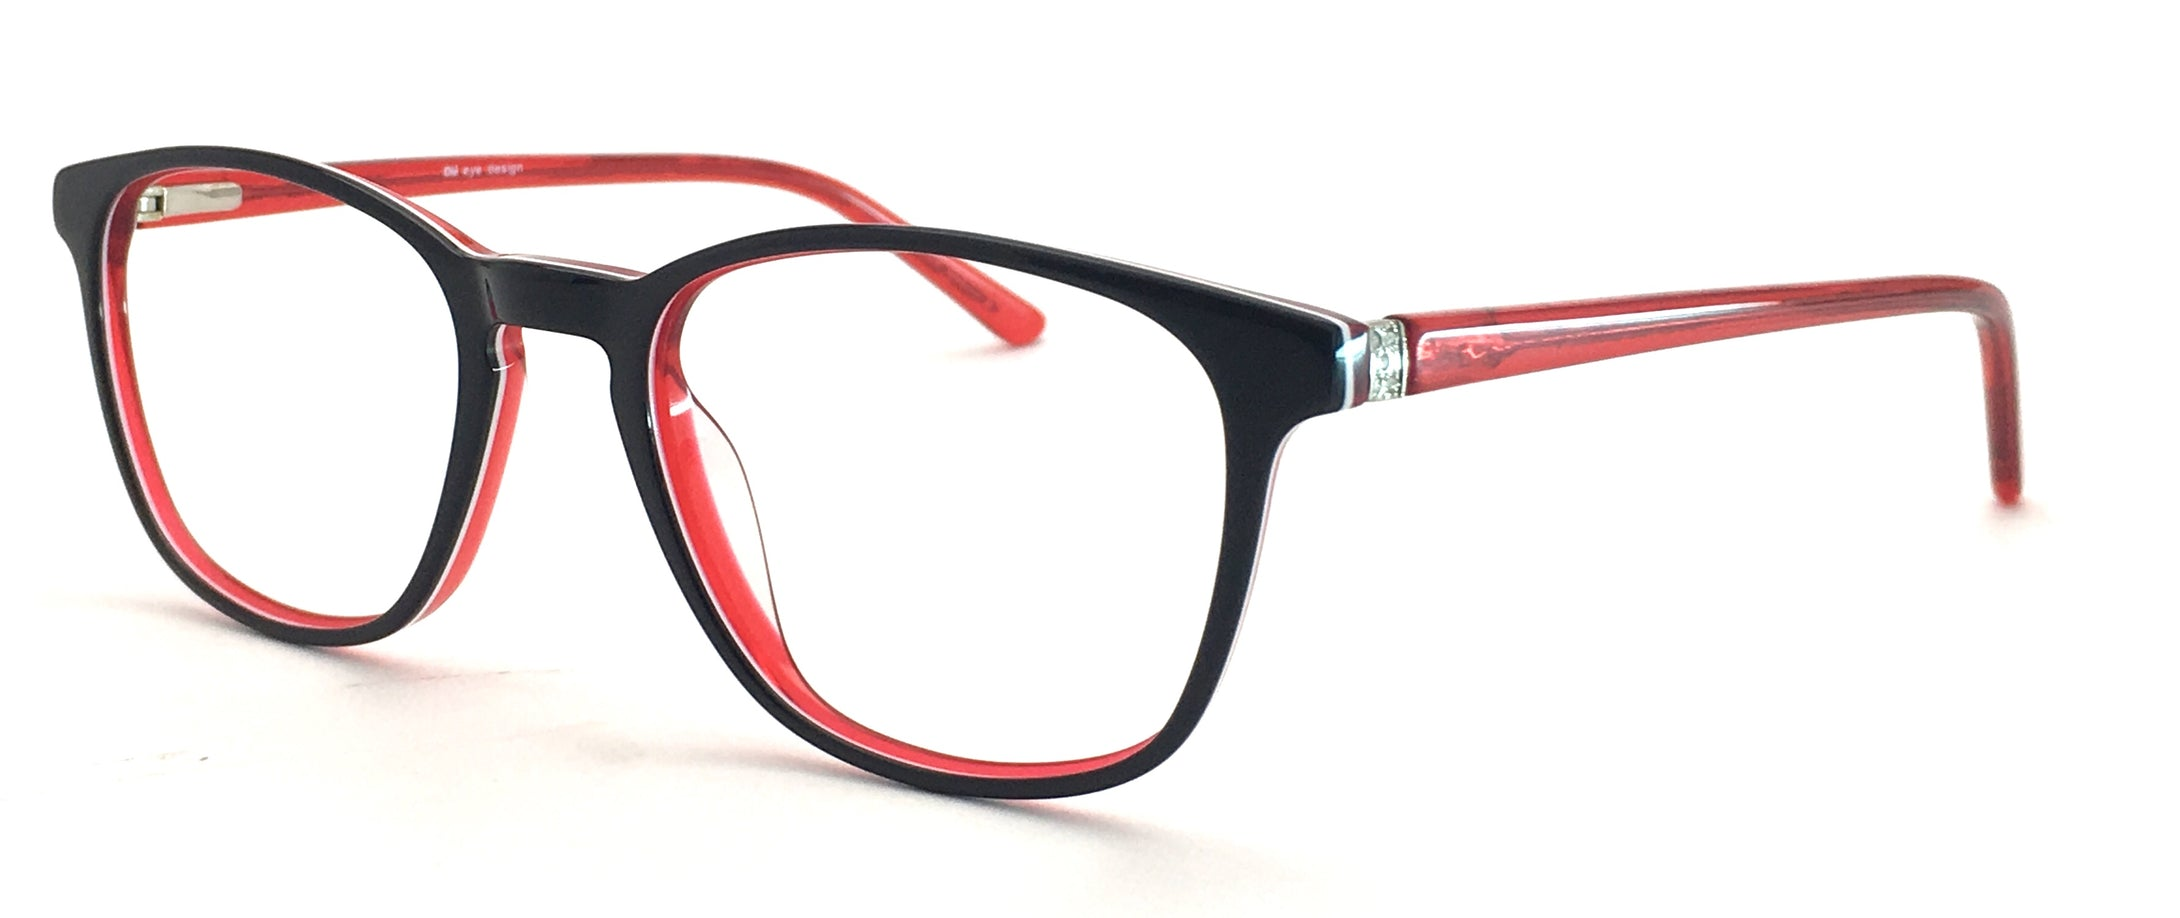 Angrish AG-7026-C3 Rectangle Eyeglasses